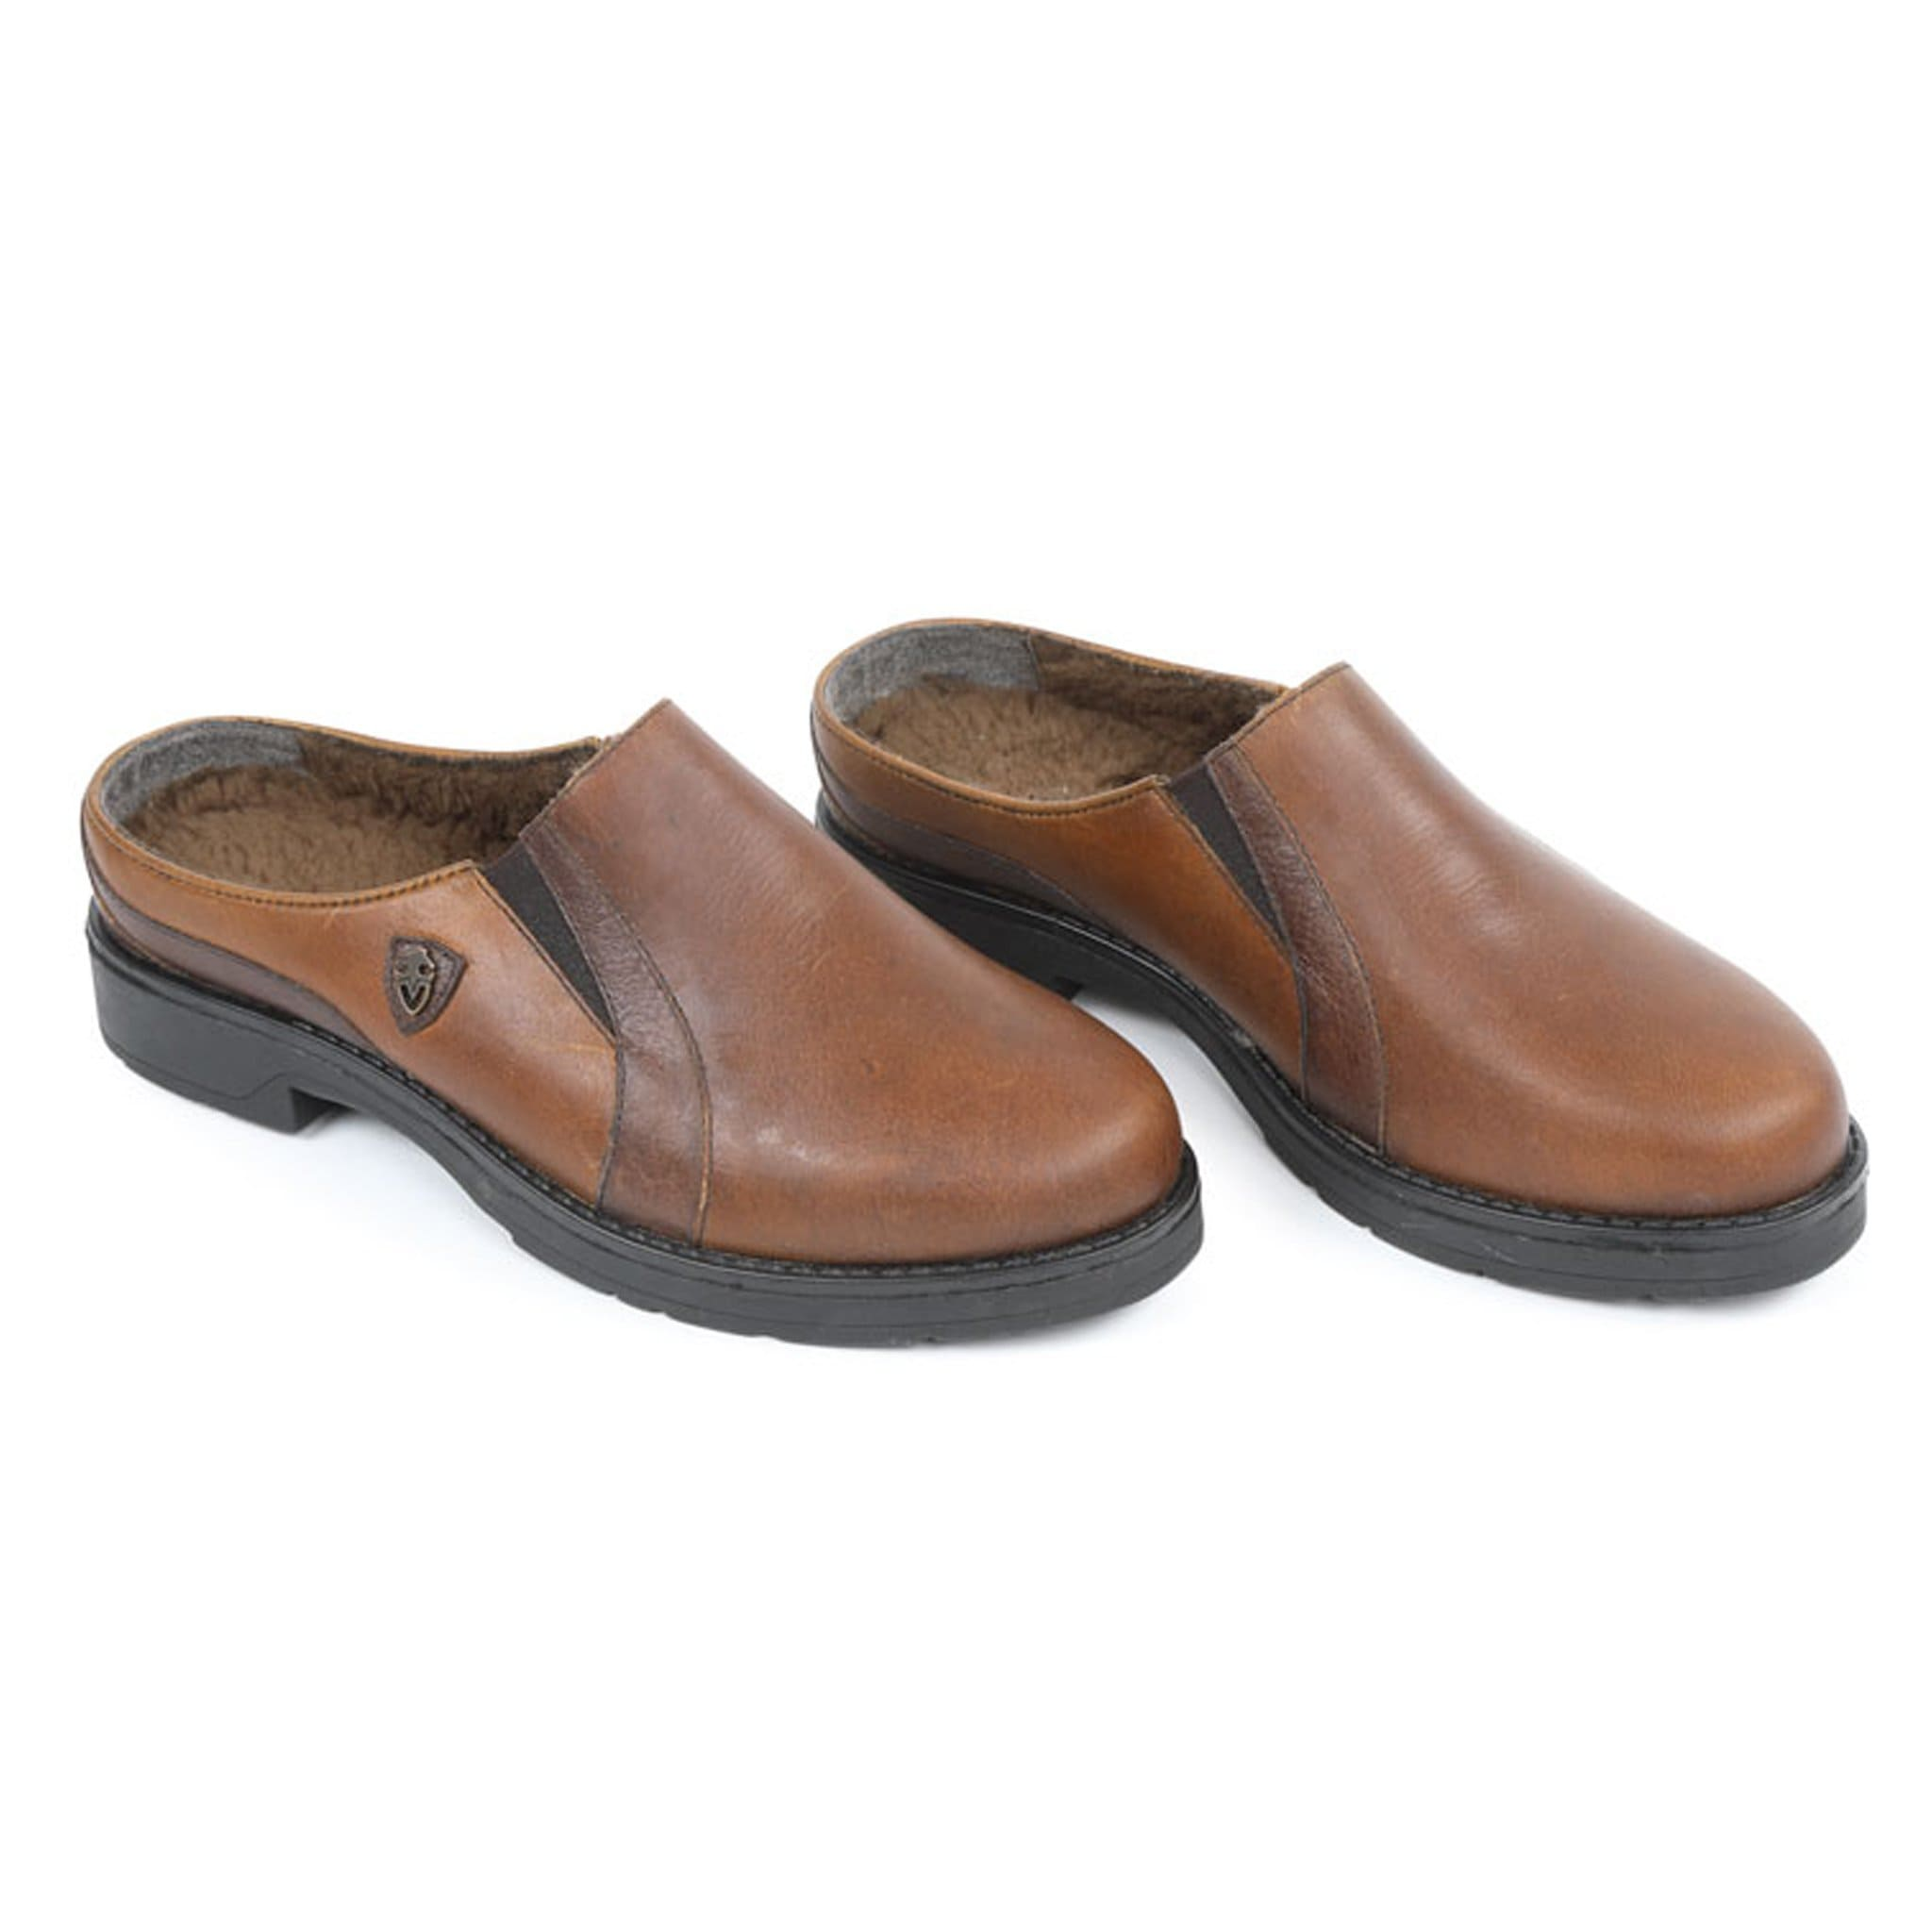 Shires Moretta Donna Clogs Brown 8224